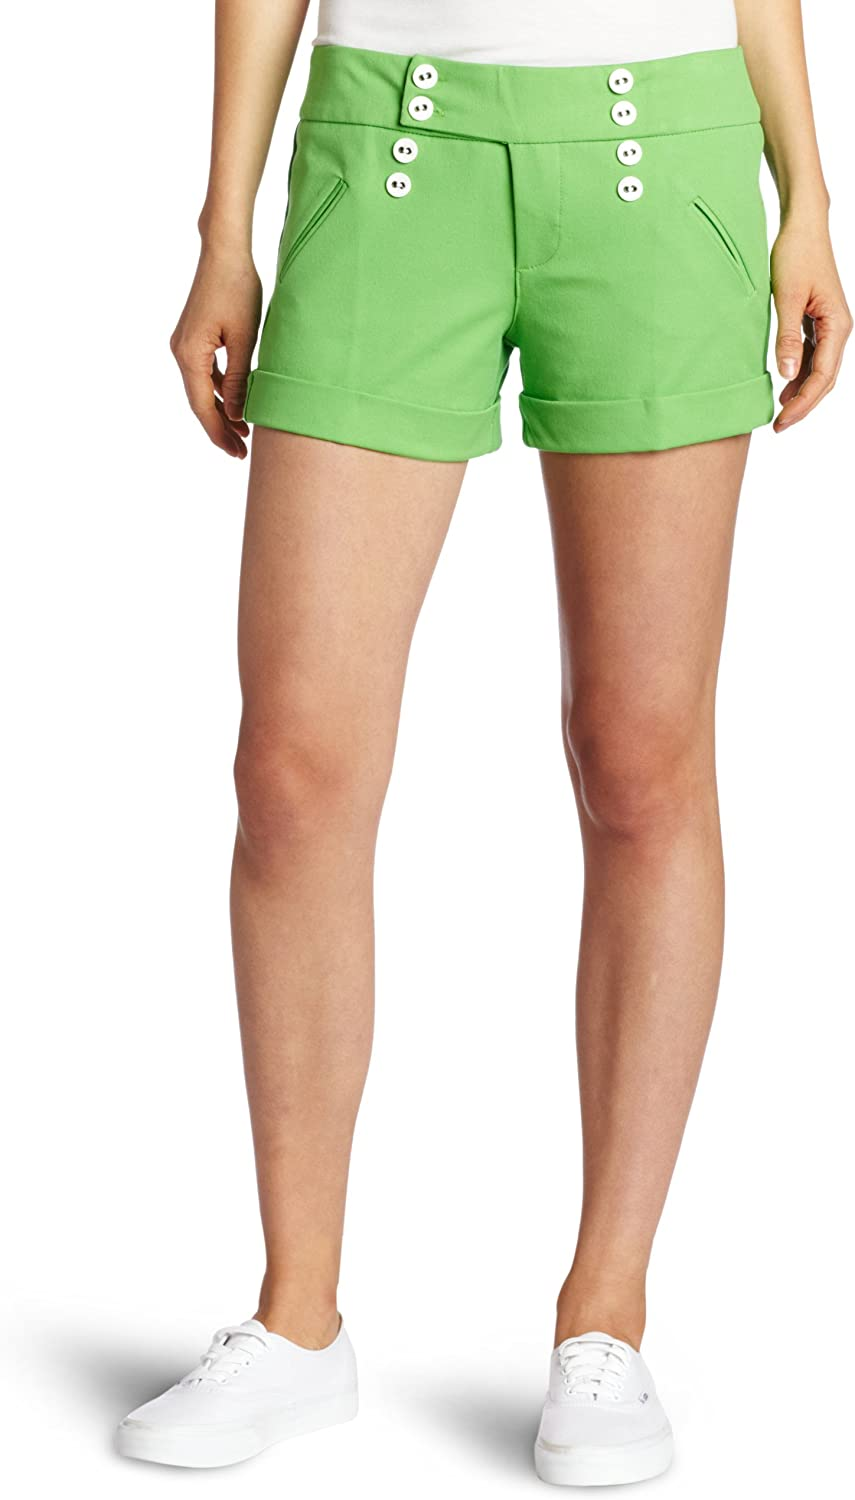 Lucy Super popular specialty Tampa Mall store Love Juniors Sailor Short